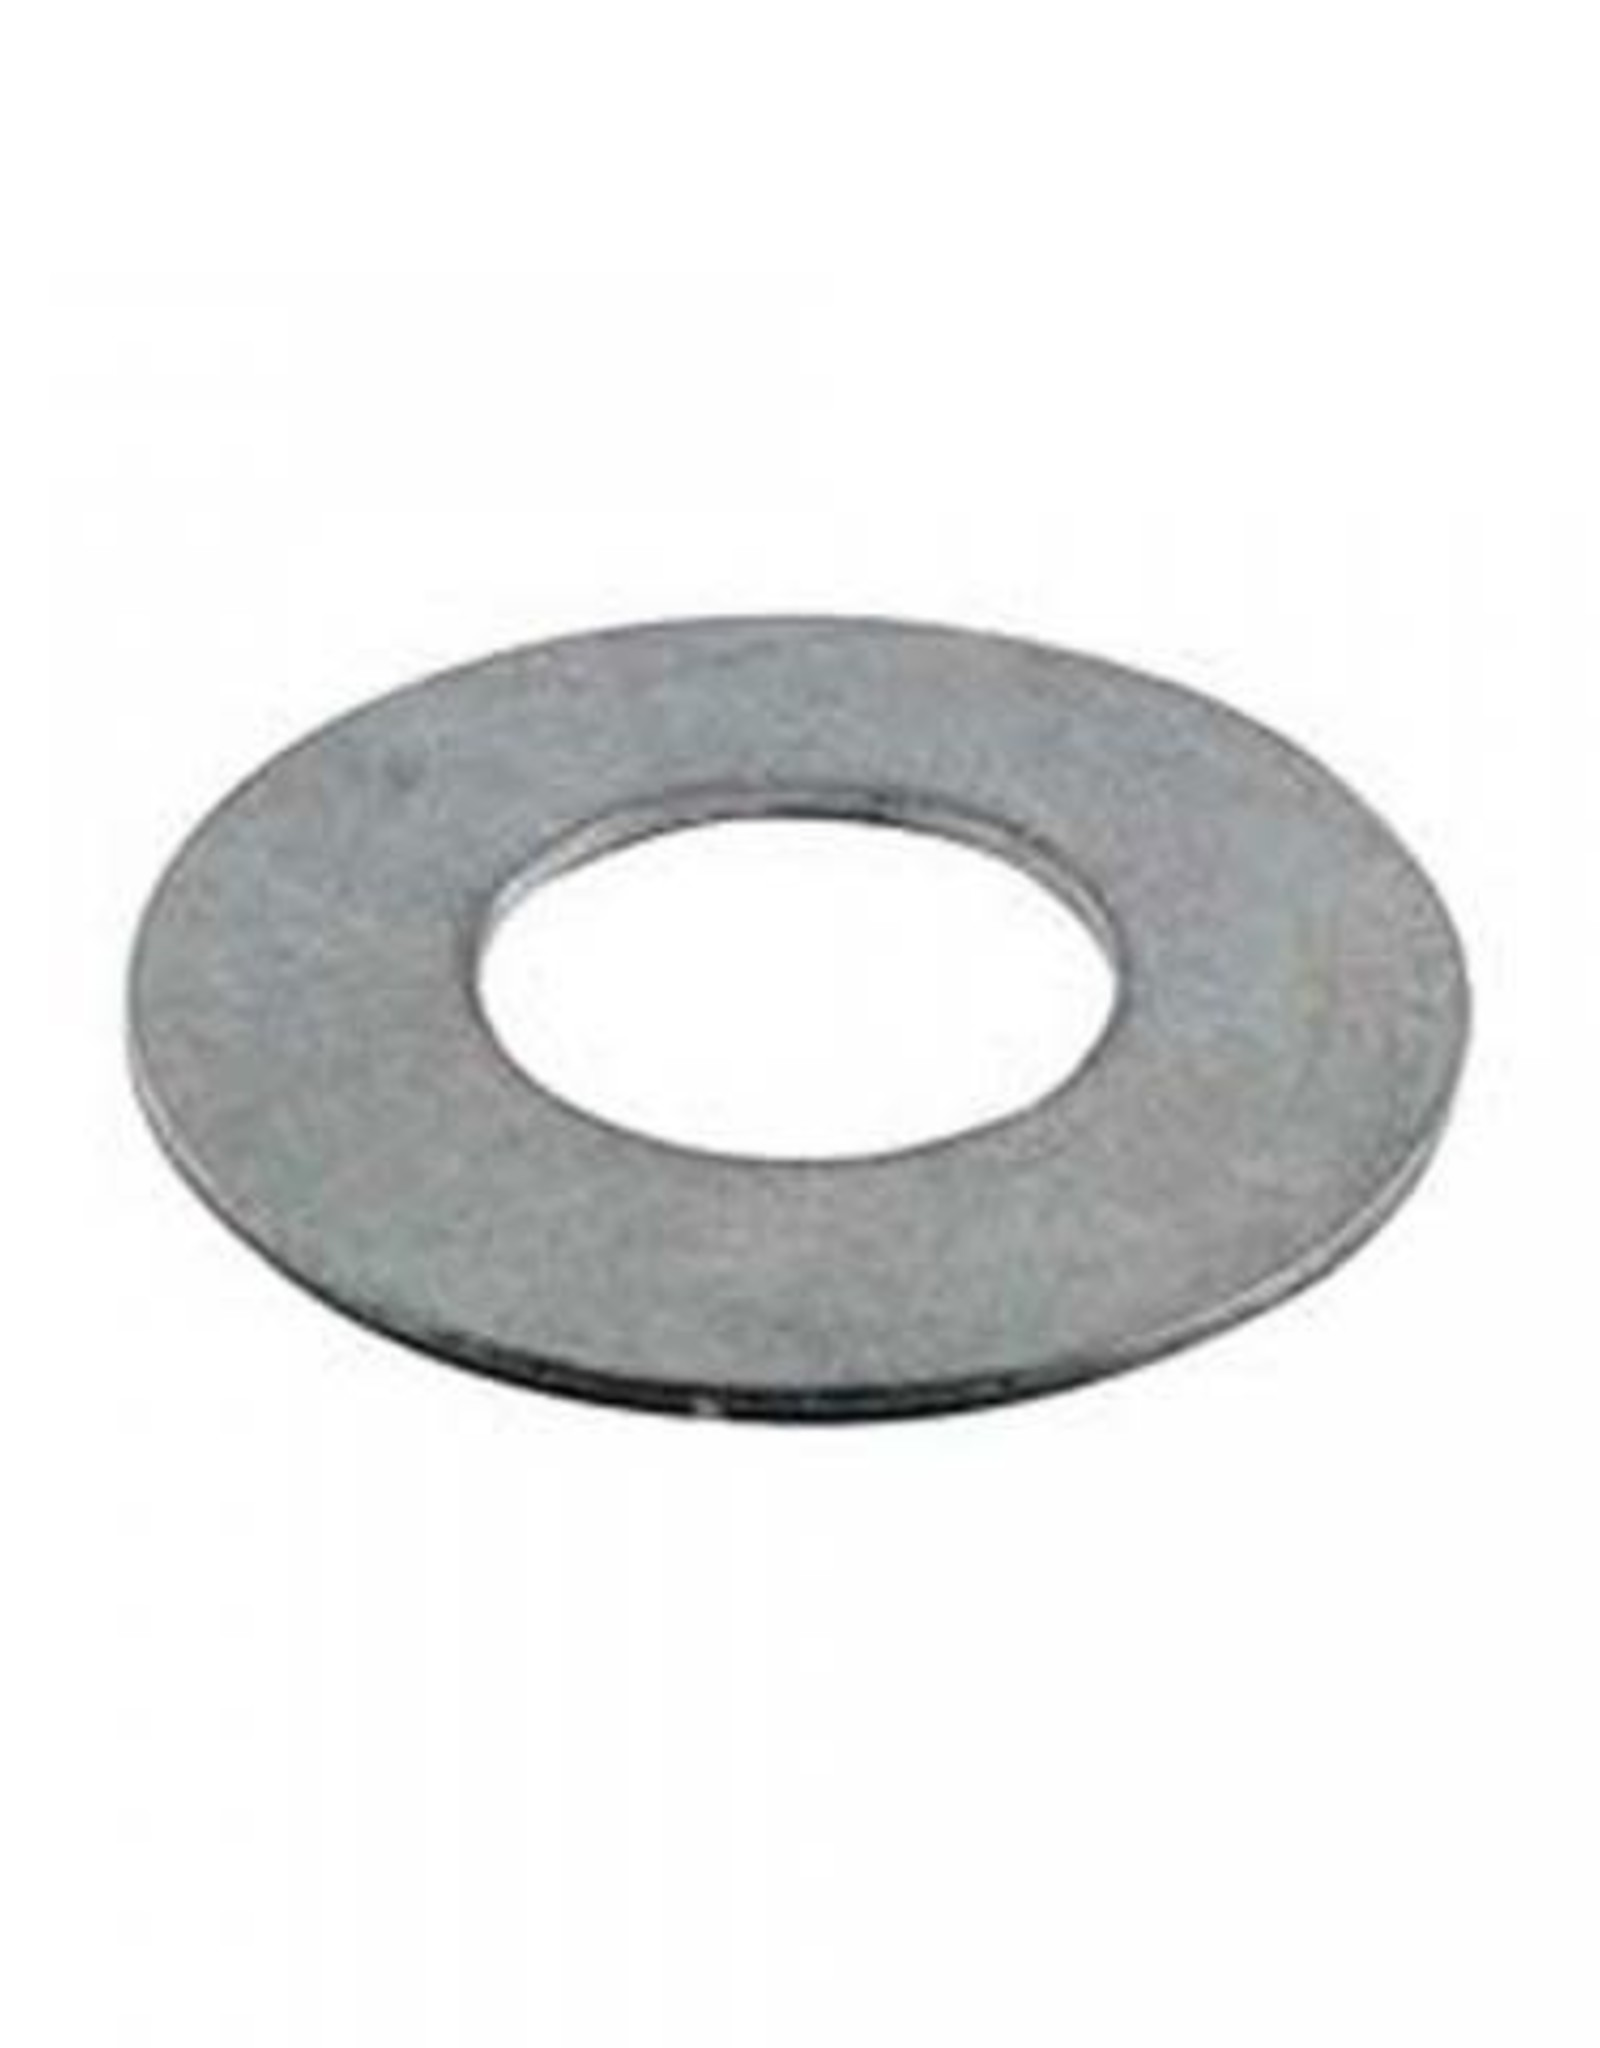 ALUMINUM WASHER (FOR WALL COUPLING SHANKS